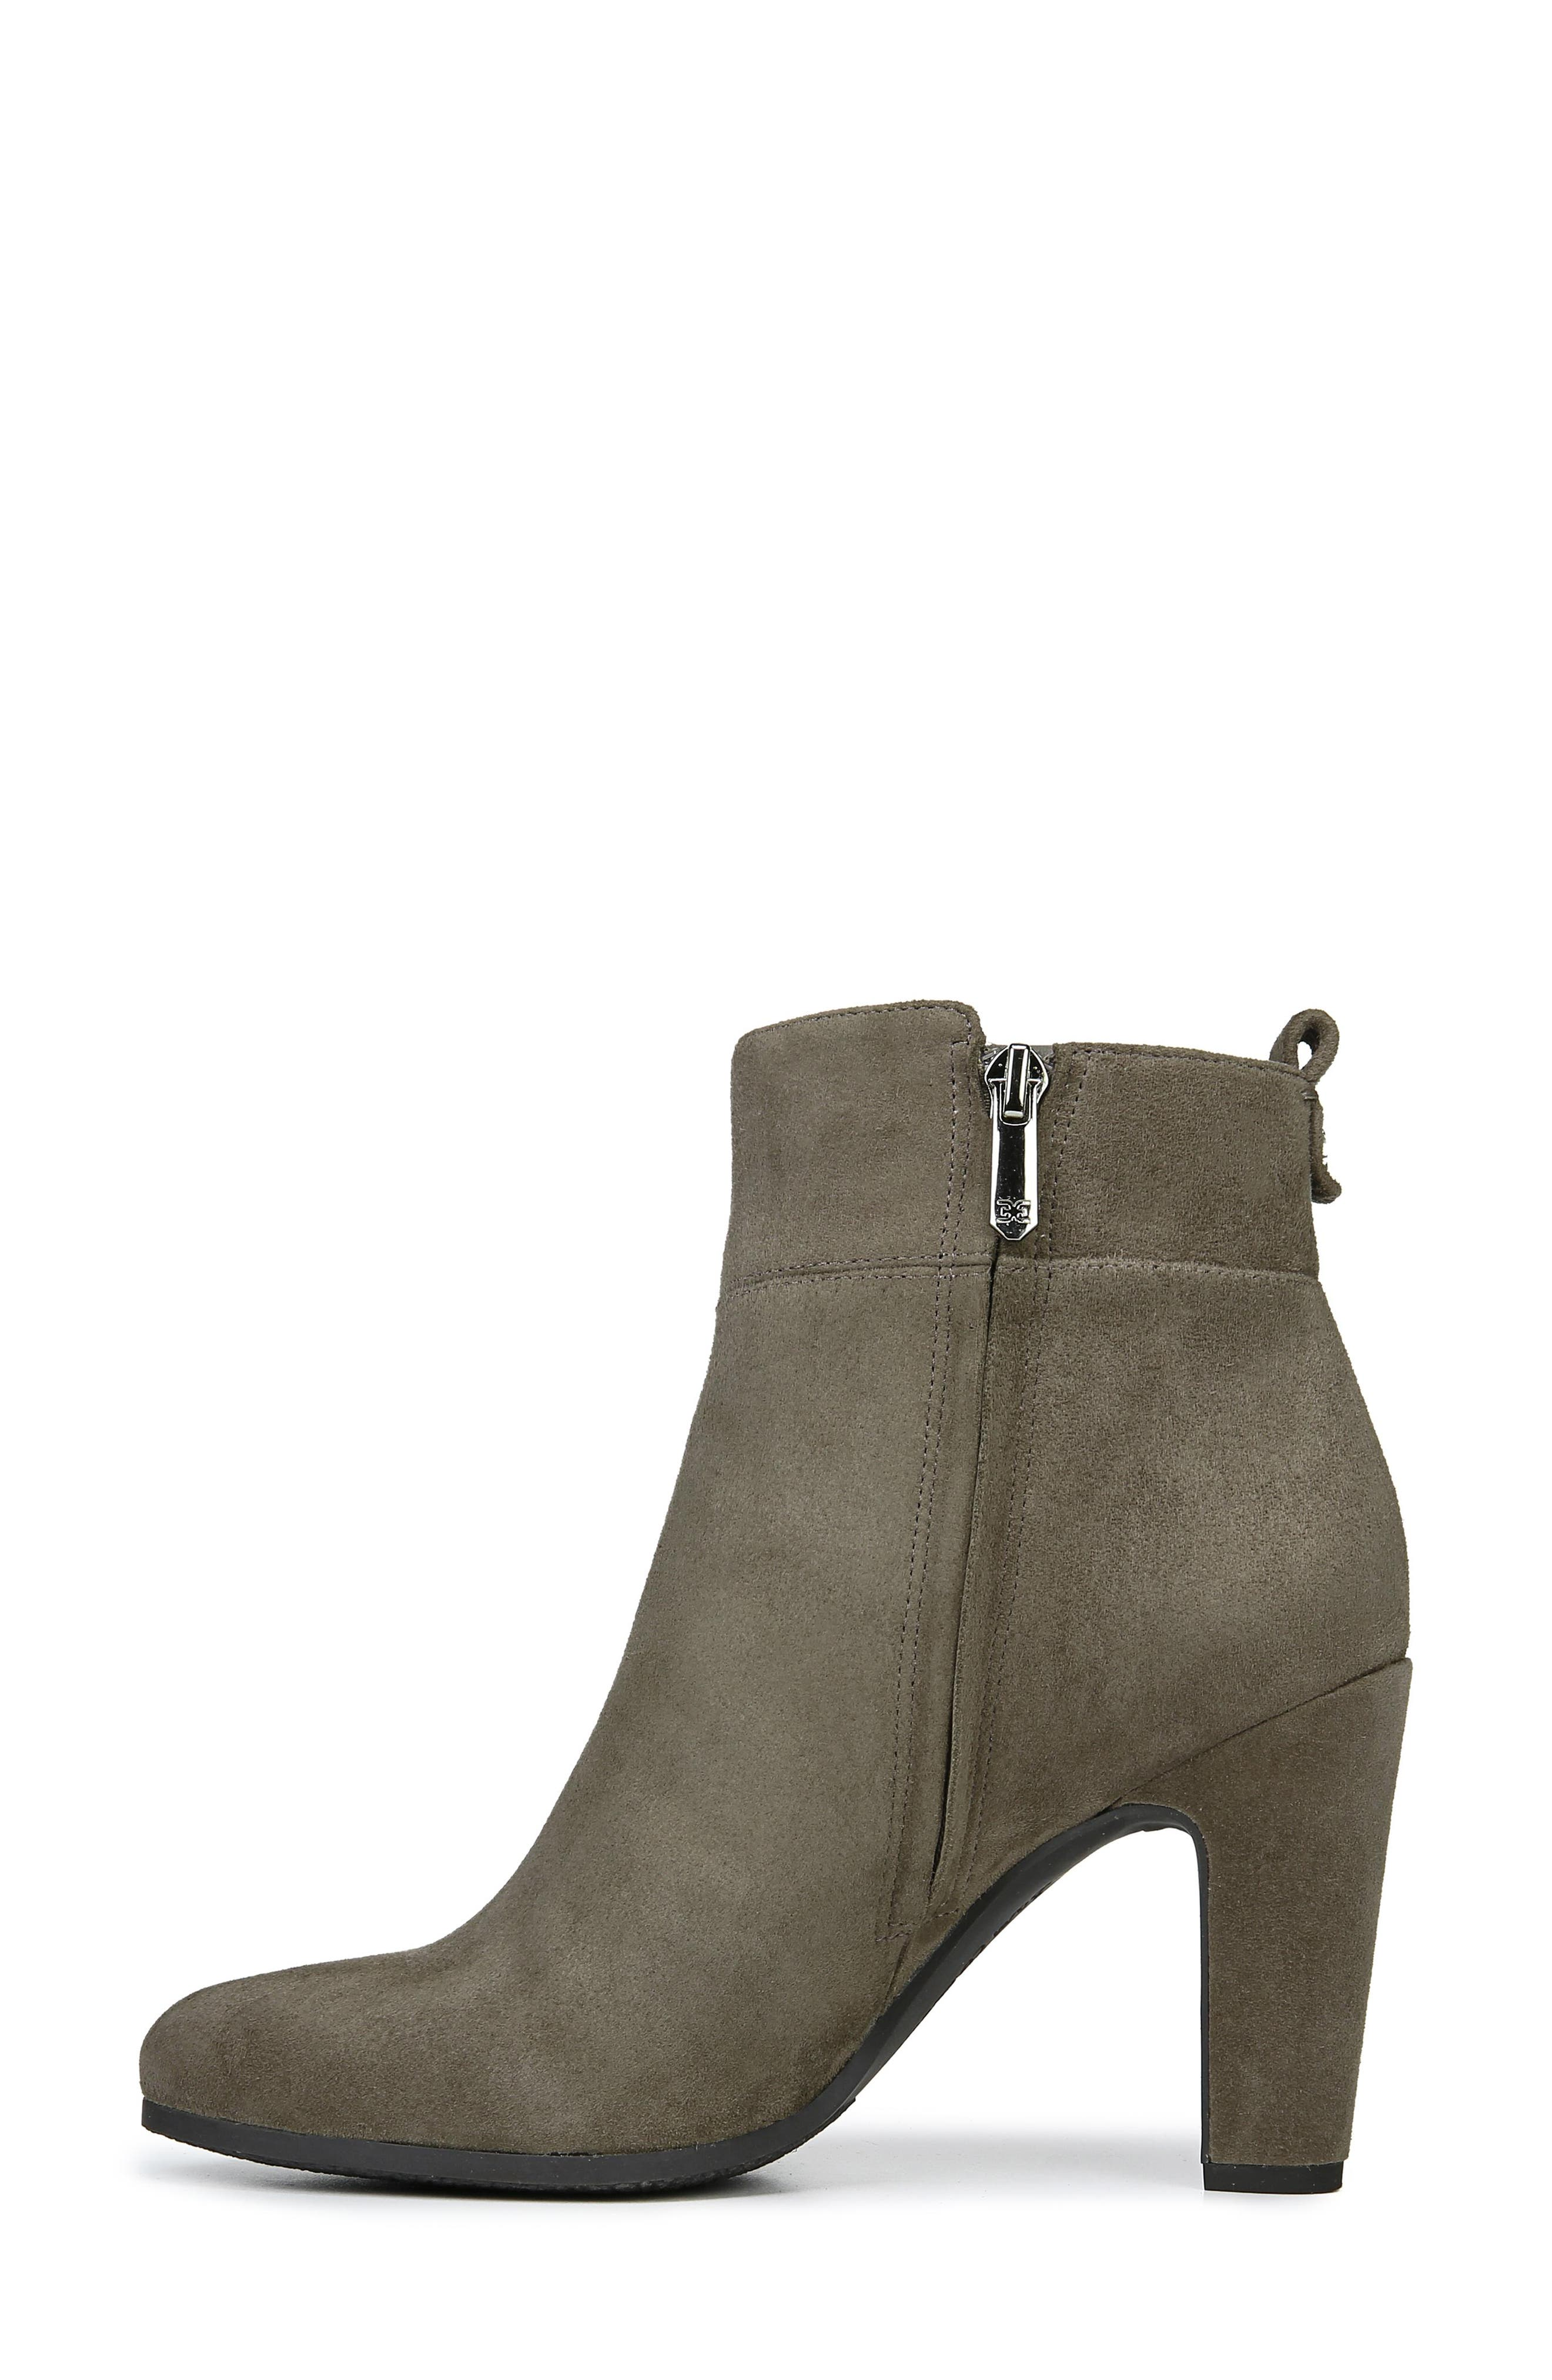 Sianna Bootie,                             Alternate thumbnail 9, color,                             FLINT GREY SUEDE